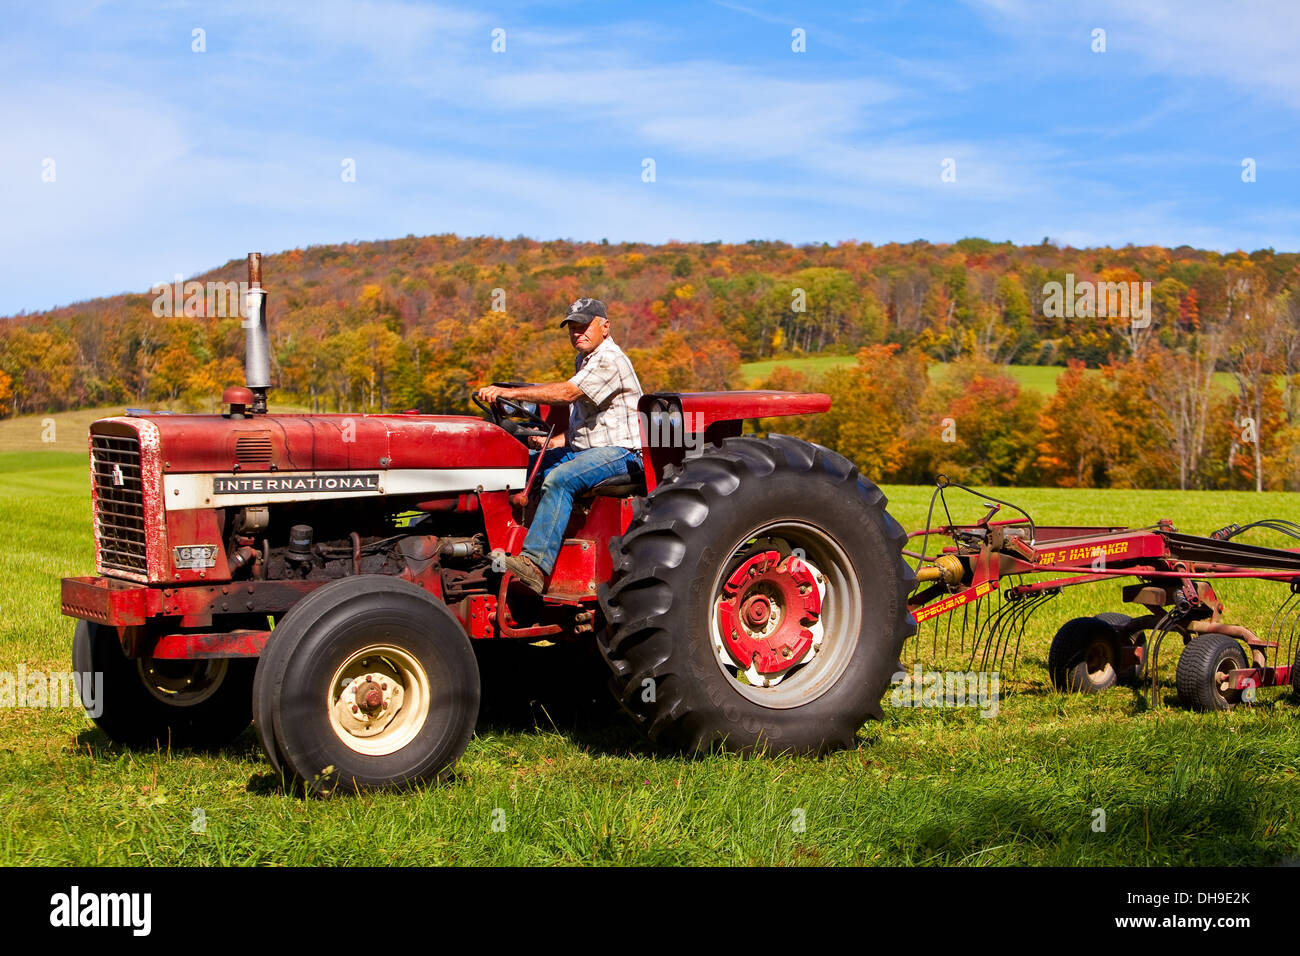 Guy On Tractor : A man drives tractor on farm in berkshire county